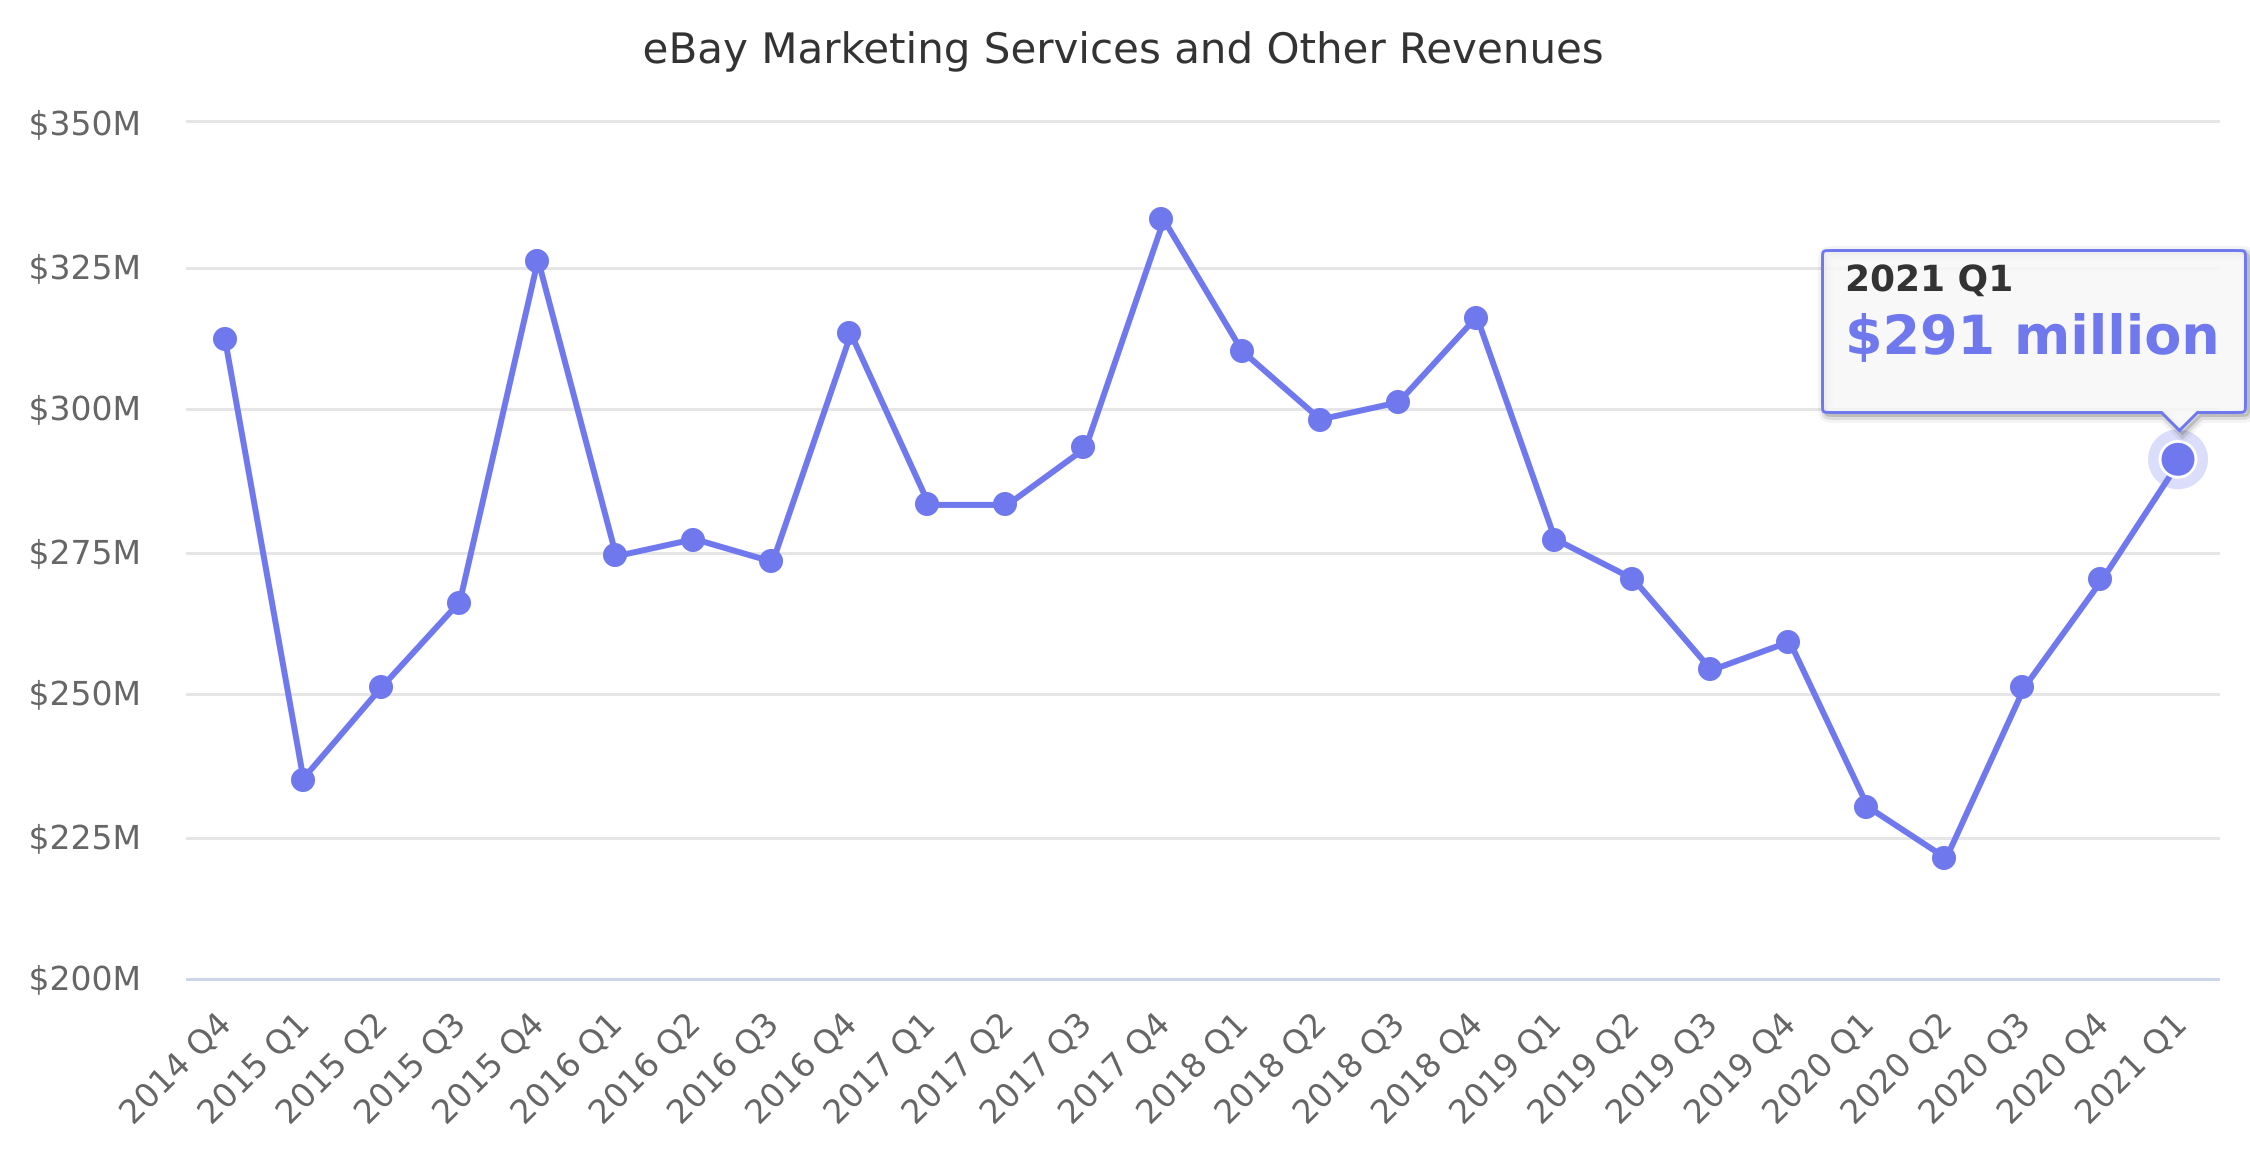 eBay Marketing Services and Other Revenues 2014-2019